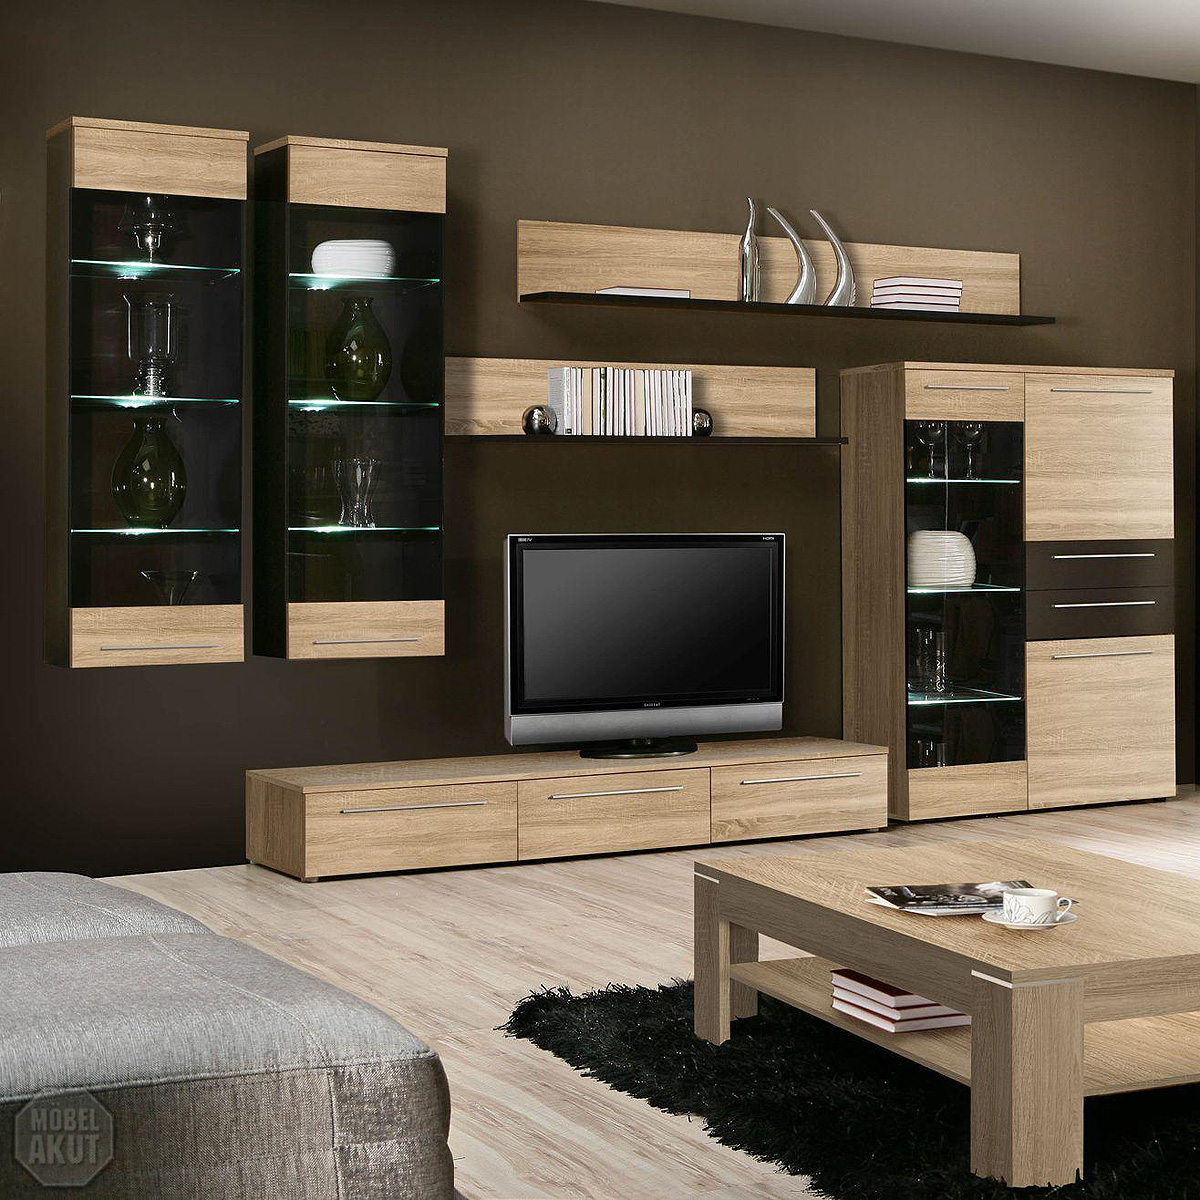 wohnwand fondo anbauwand wohnzimmer sonoma eiche s gerau braun led ebay. Black Bedroom Furniture Sets. Home Design Ideas